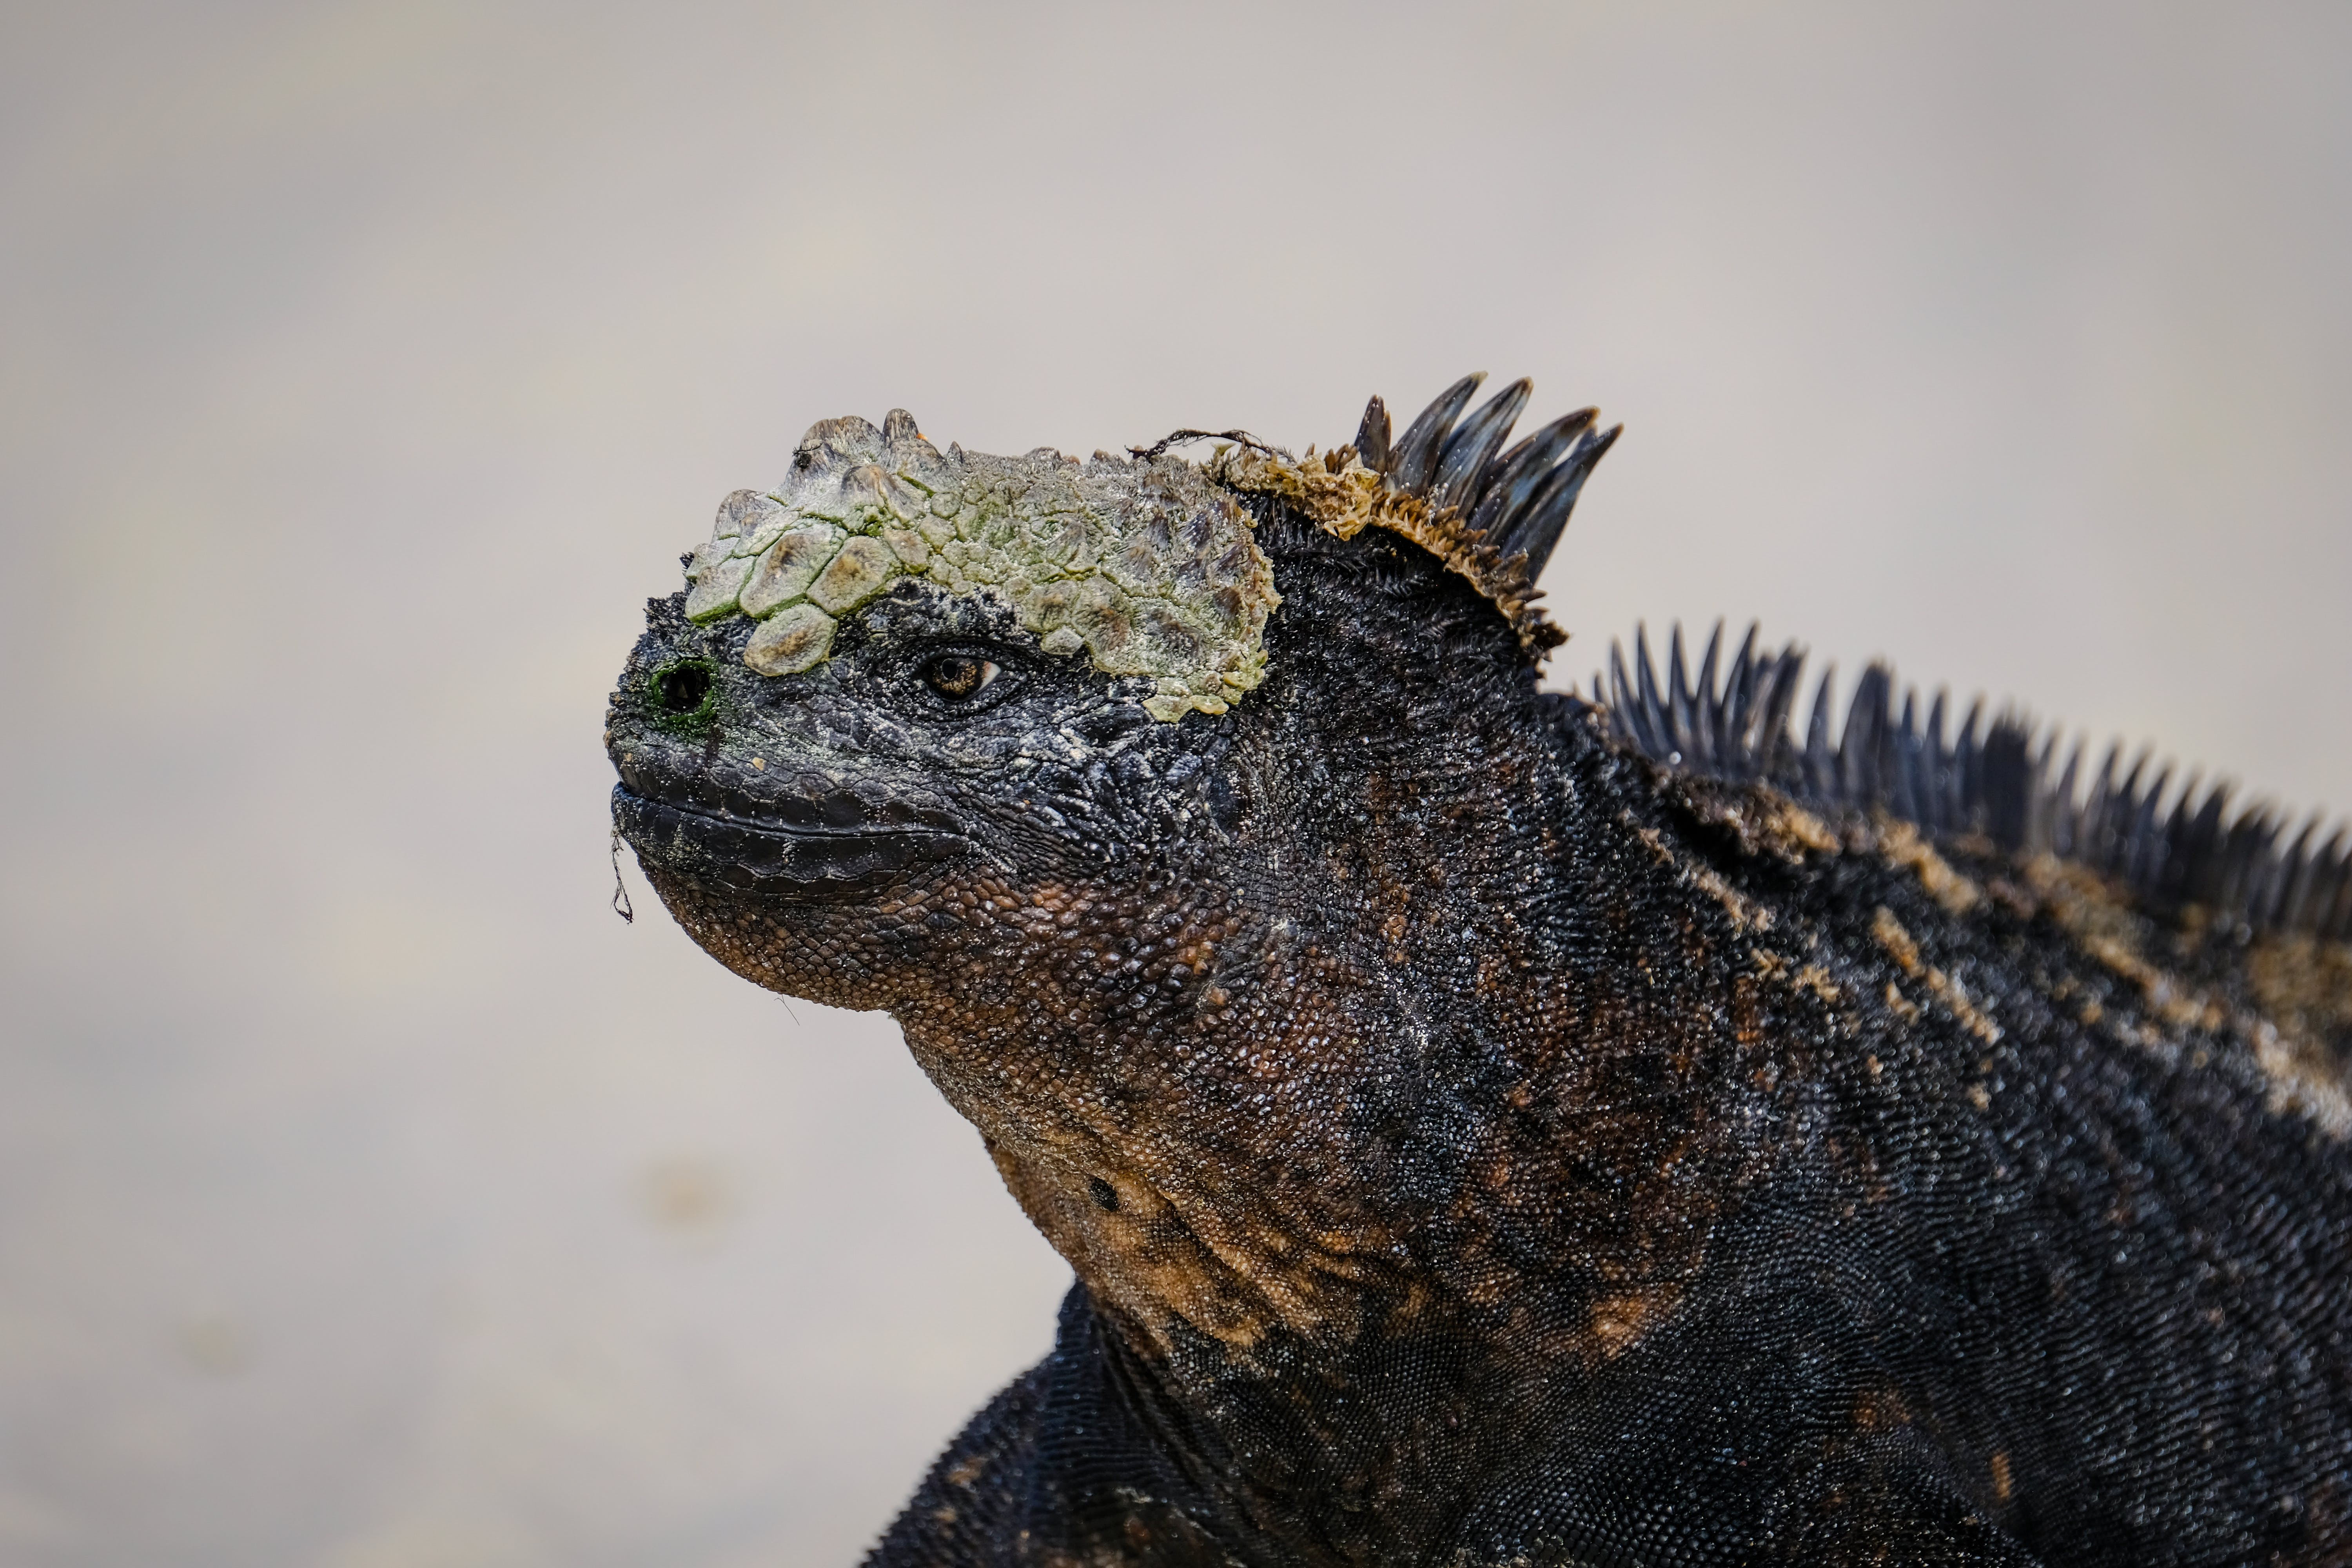 Black Iguana In Close-up Photography